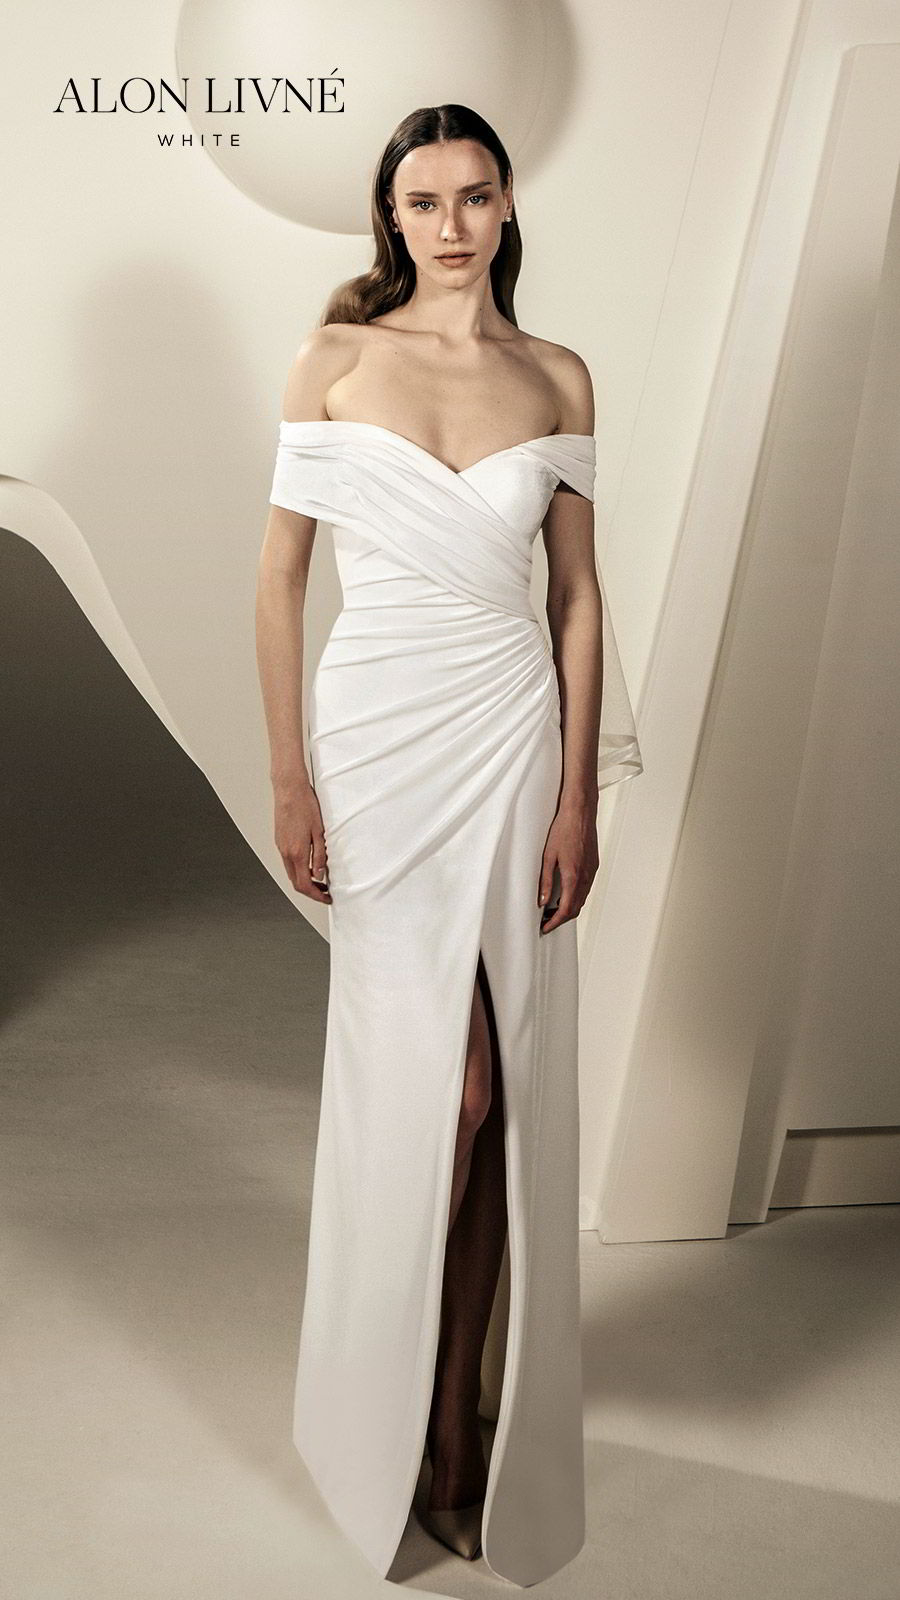 alon livne white spring 2020 bridal off shoulder sweetheart wrap neckline ruched bodice sheath column simple wedding dress slit skirt (caitlin) elegant clean minimalist fv